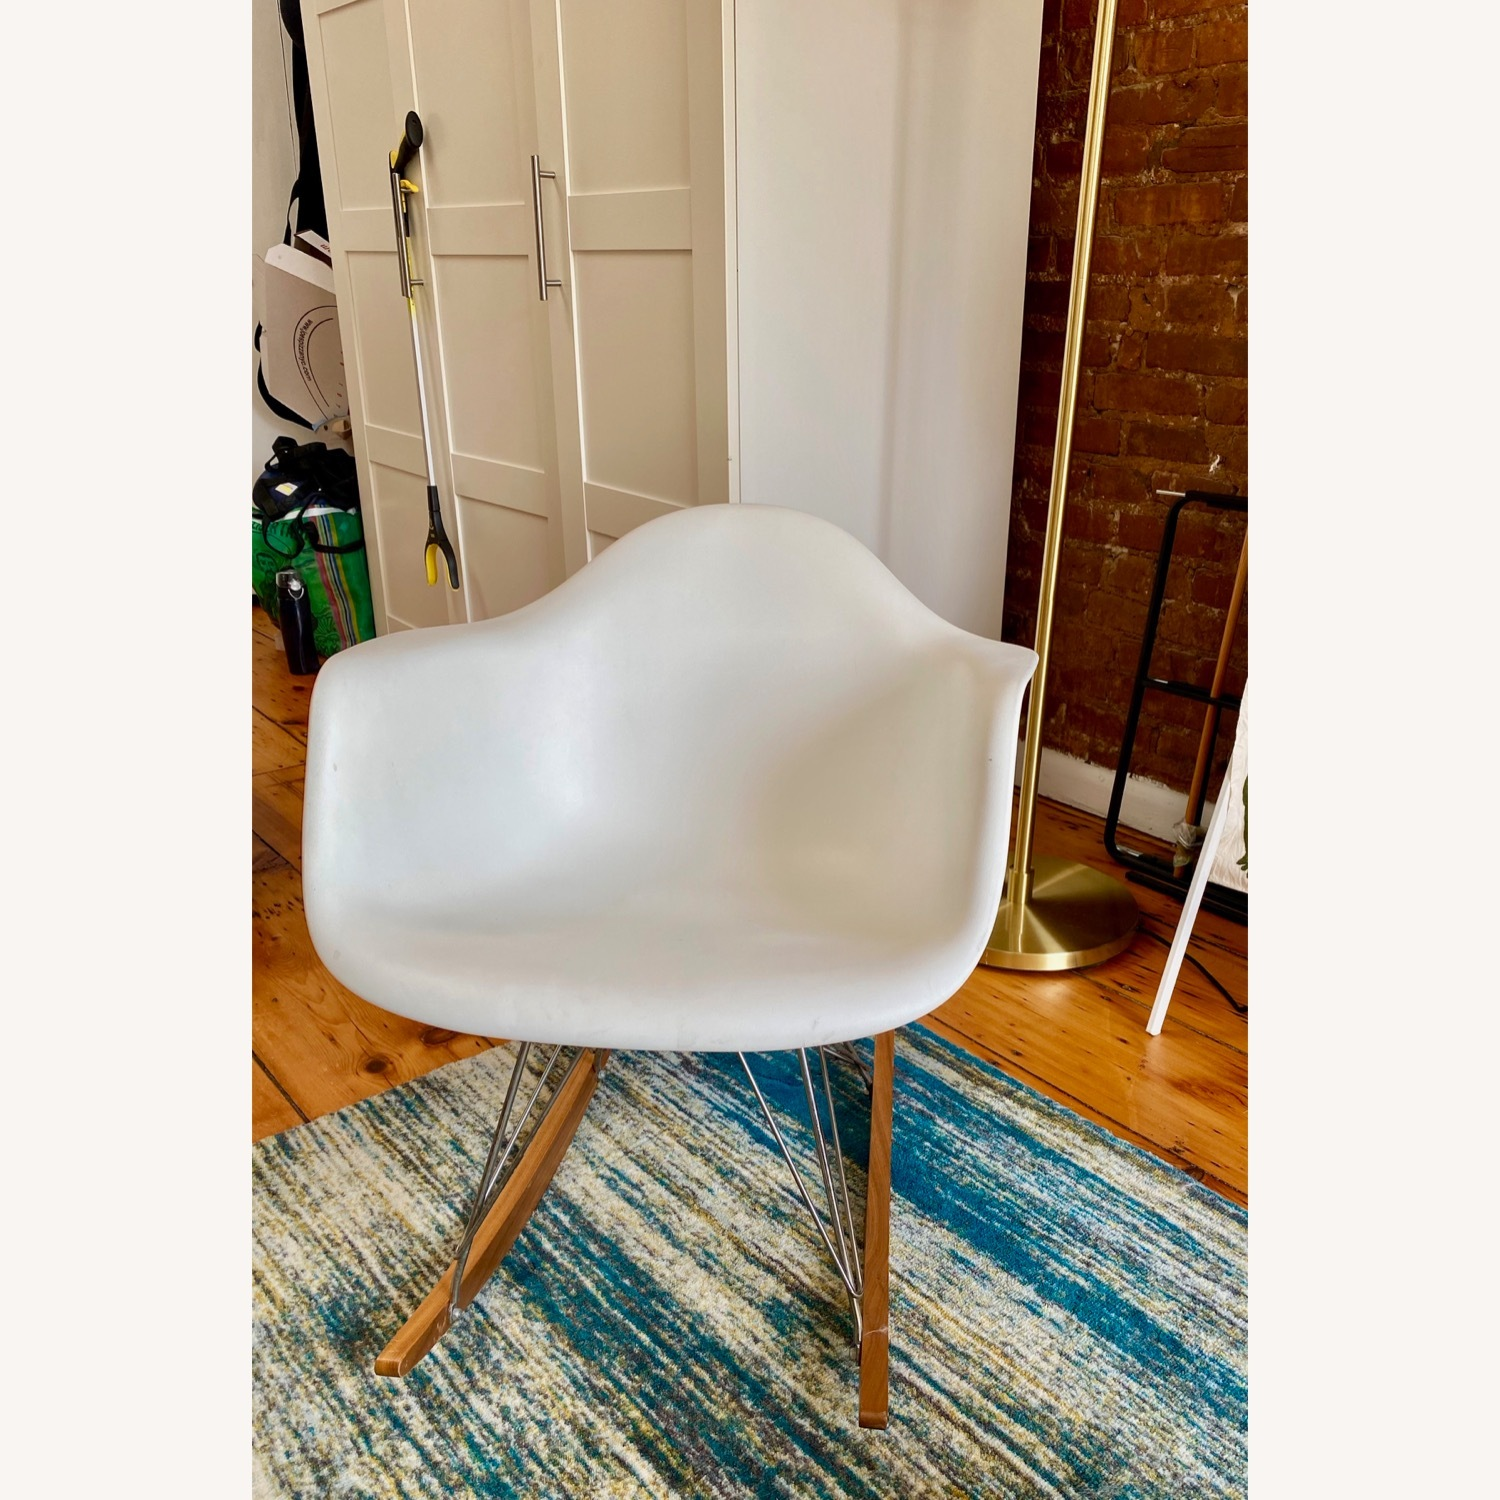 Eames Molded Plastic Armchair, Rocker Base - image-3